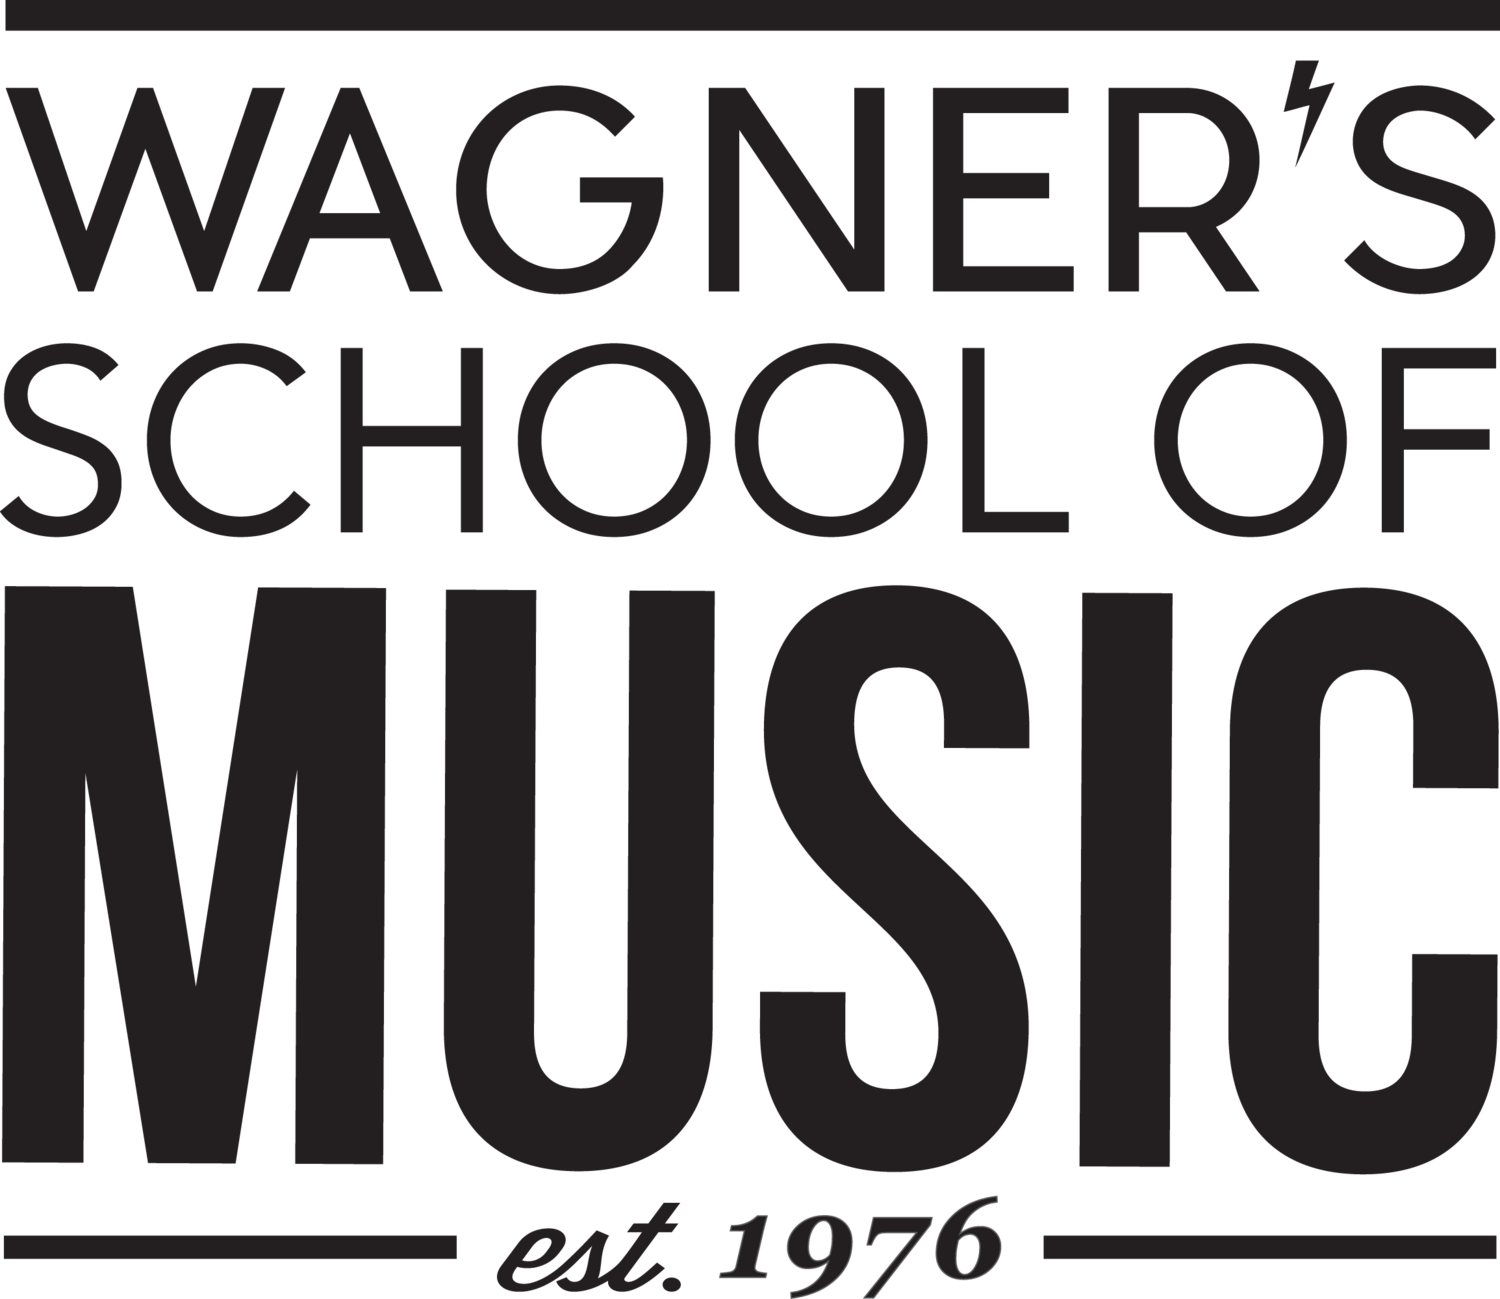 Wagner's School of Music